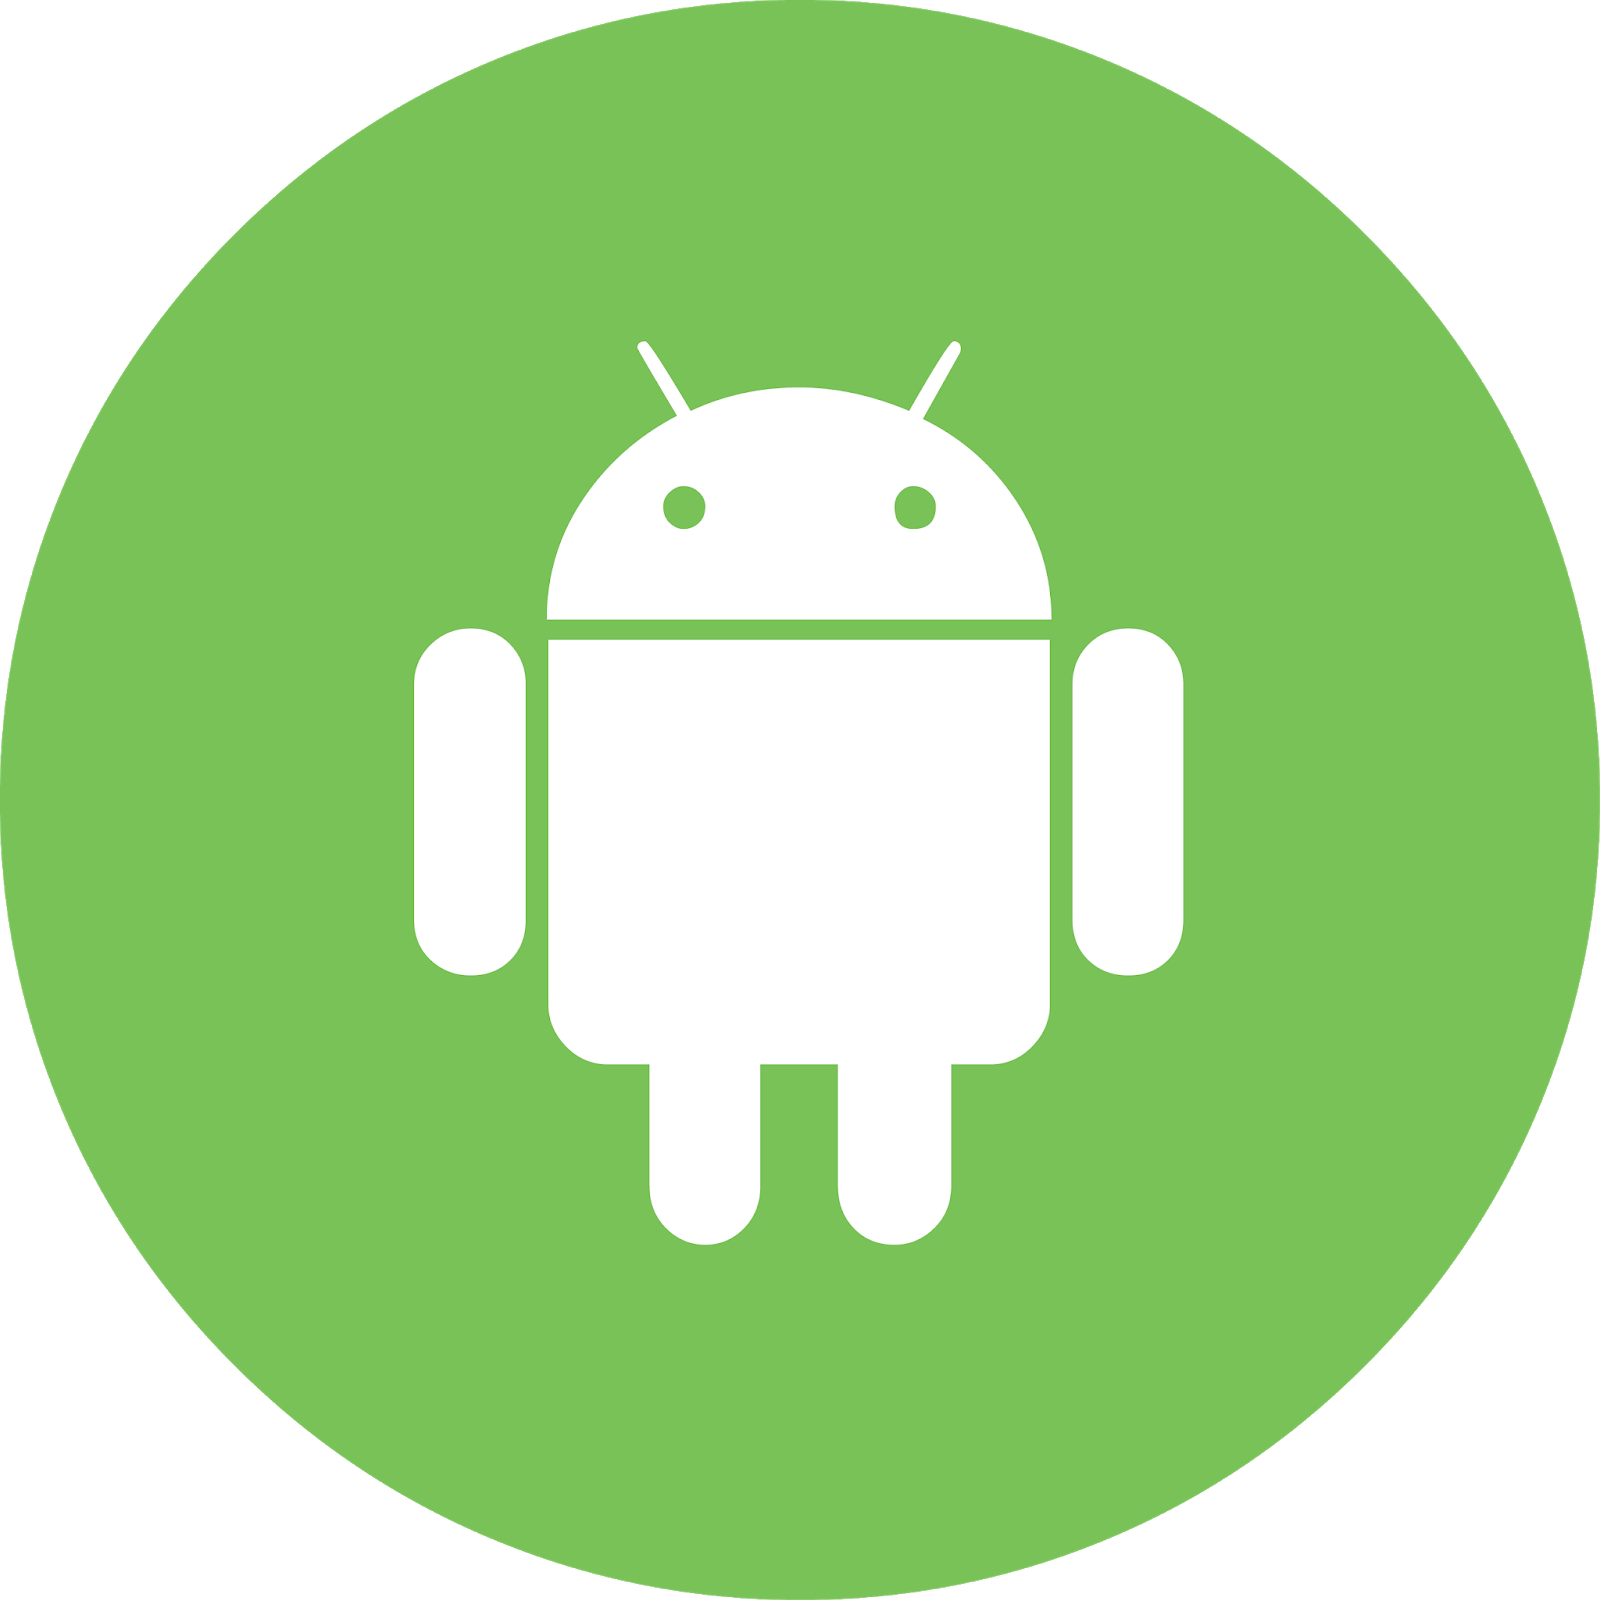 download logo android vector svg eps png psd ai.